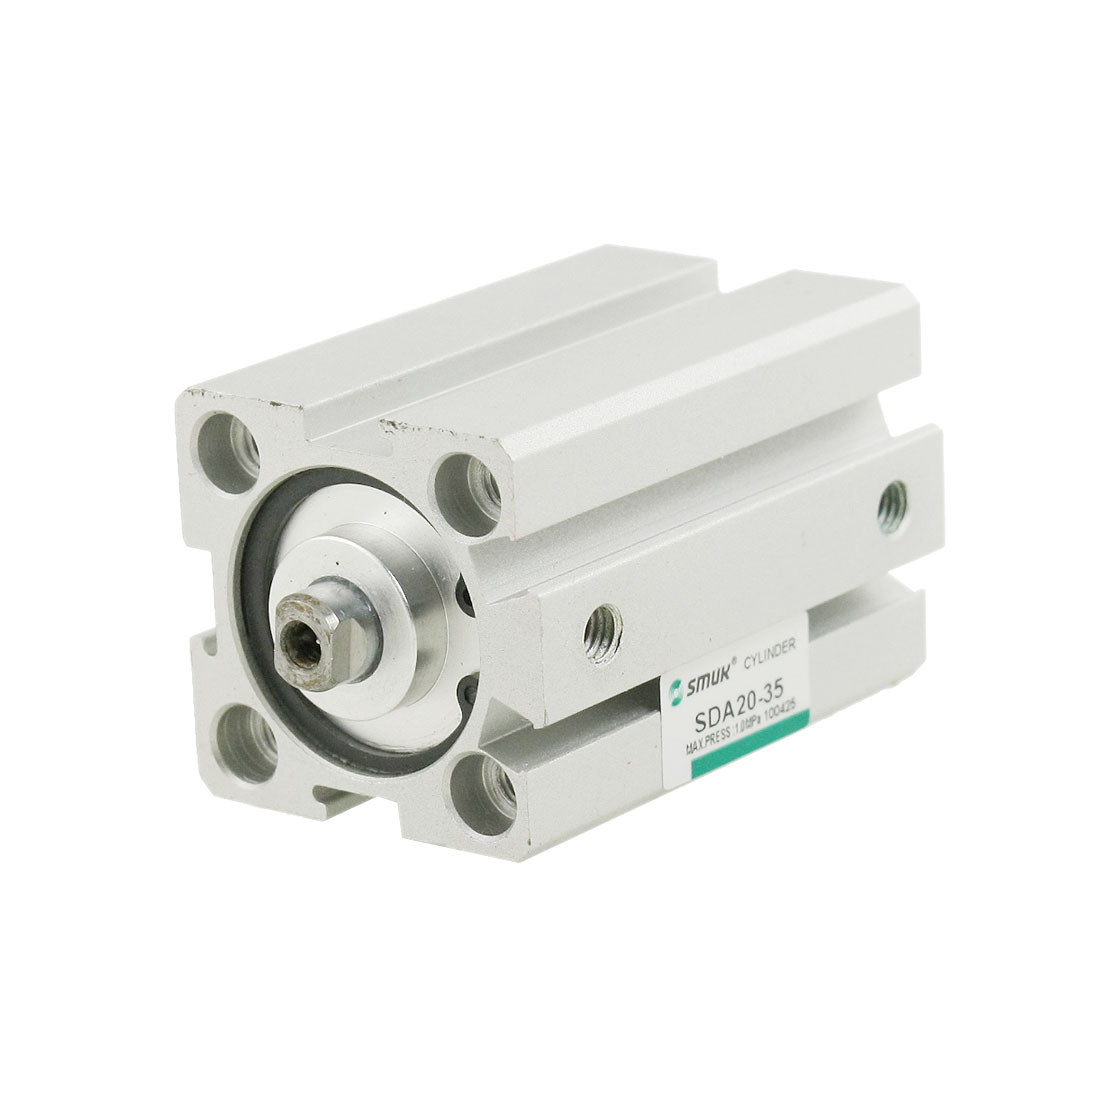 SDA20-35 20m Bore 35mm Stroke Double Acting Thin Air Cylinder